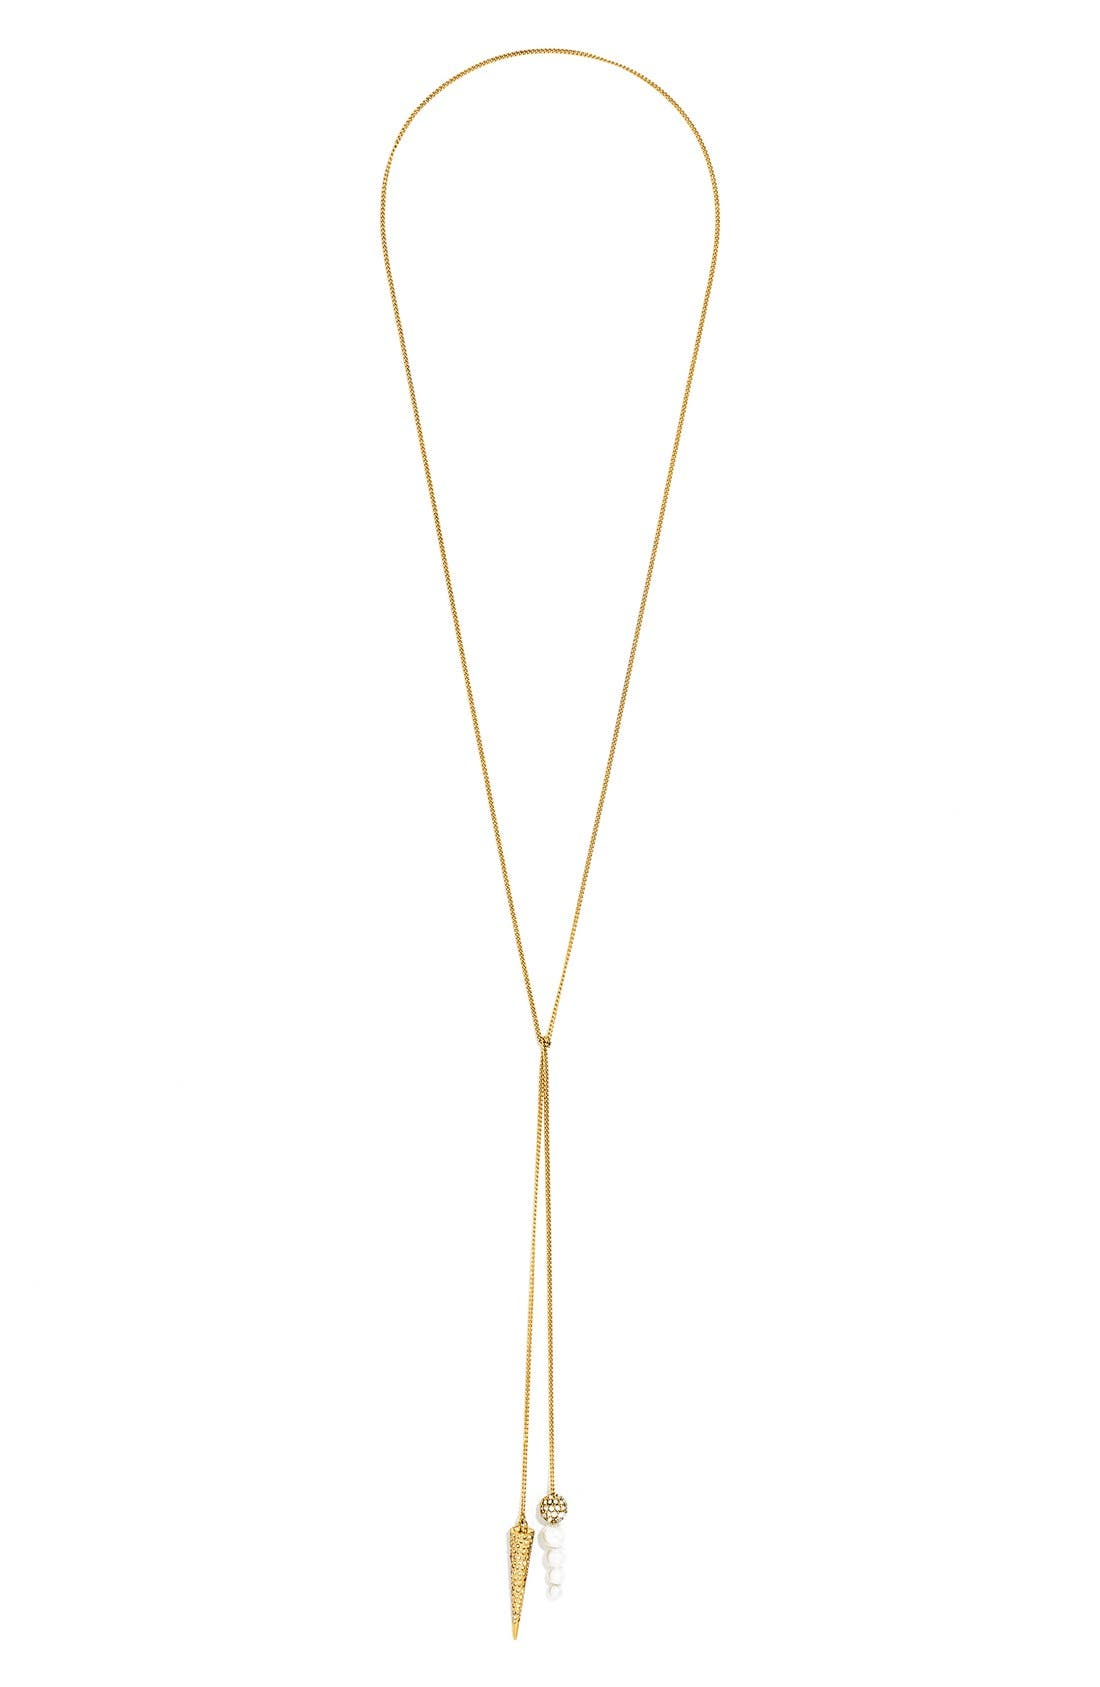 Alternate Image 1 Selected - BaubleBar 'Double Tail' Y-Chain Necklace